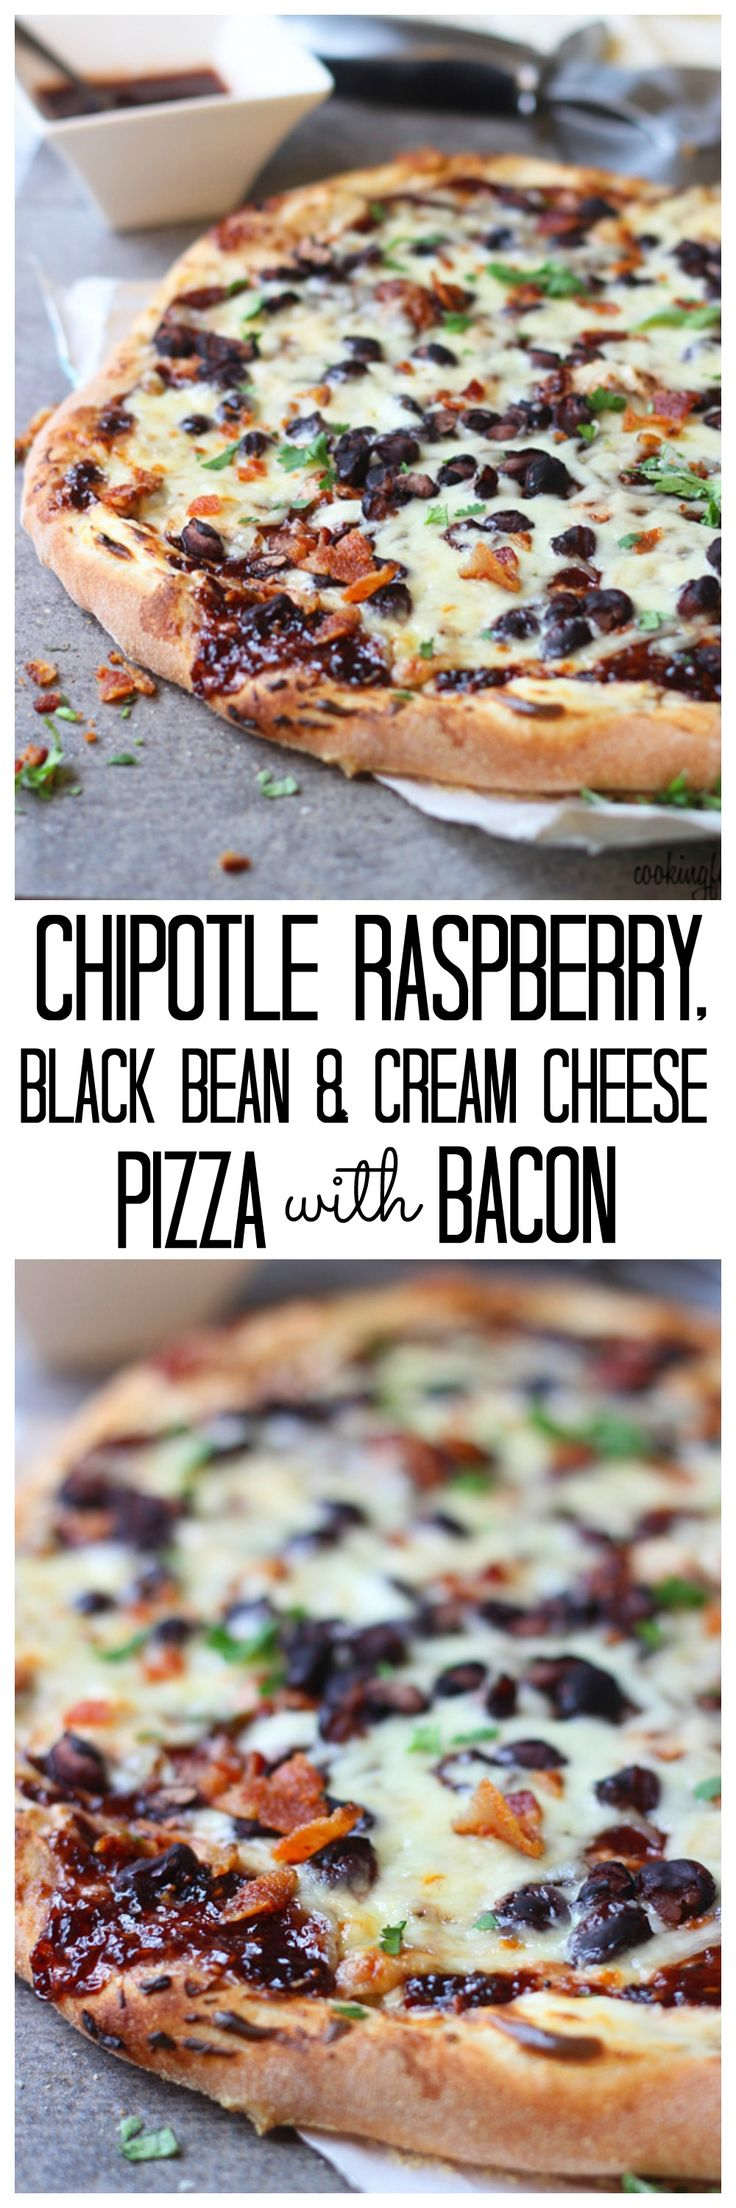 Chipotle, Black Bean and Cream Cheese Pizza with Bacon